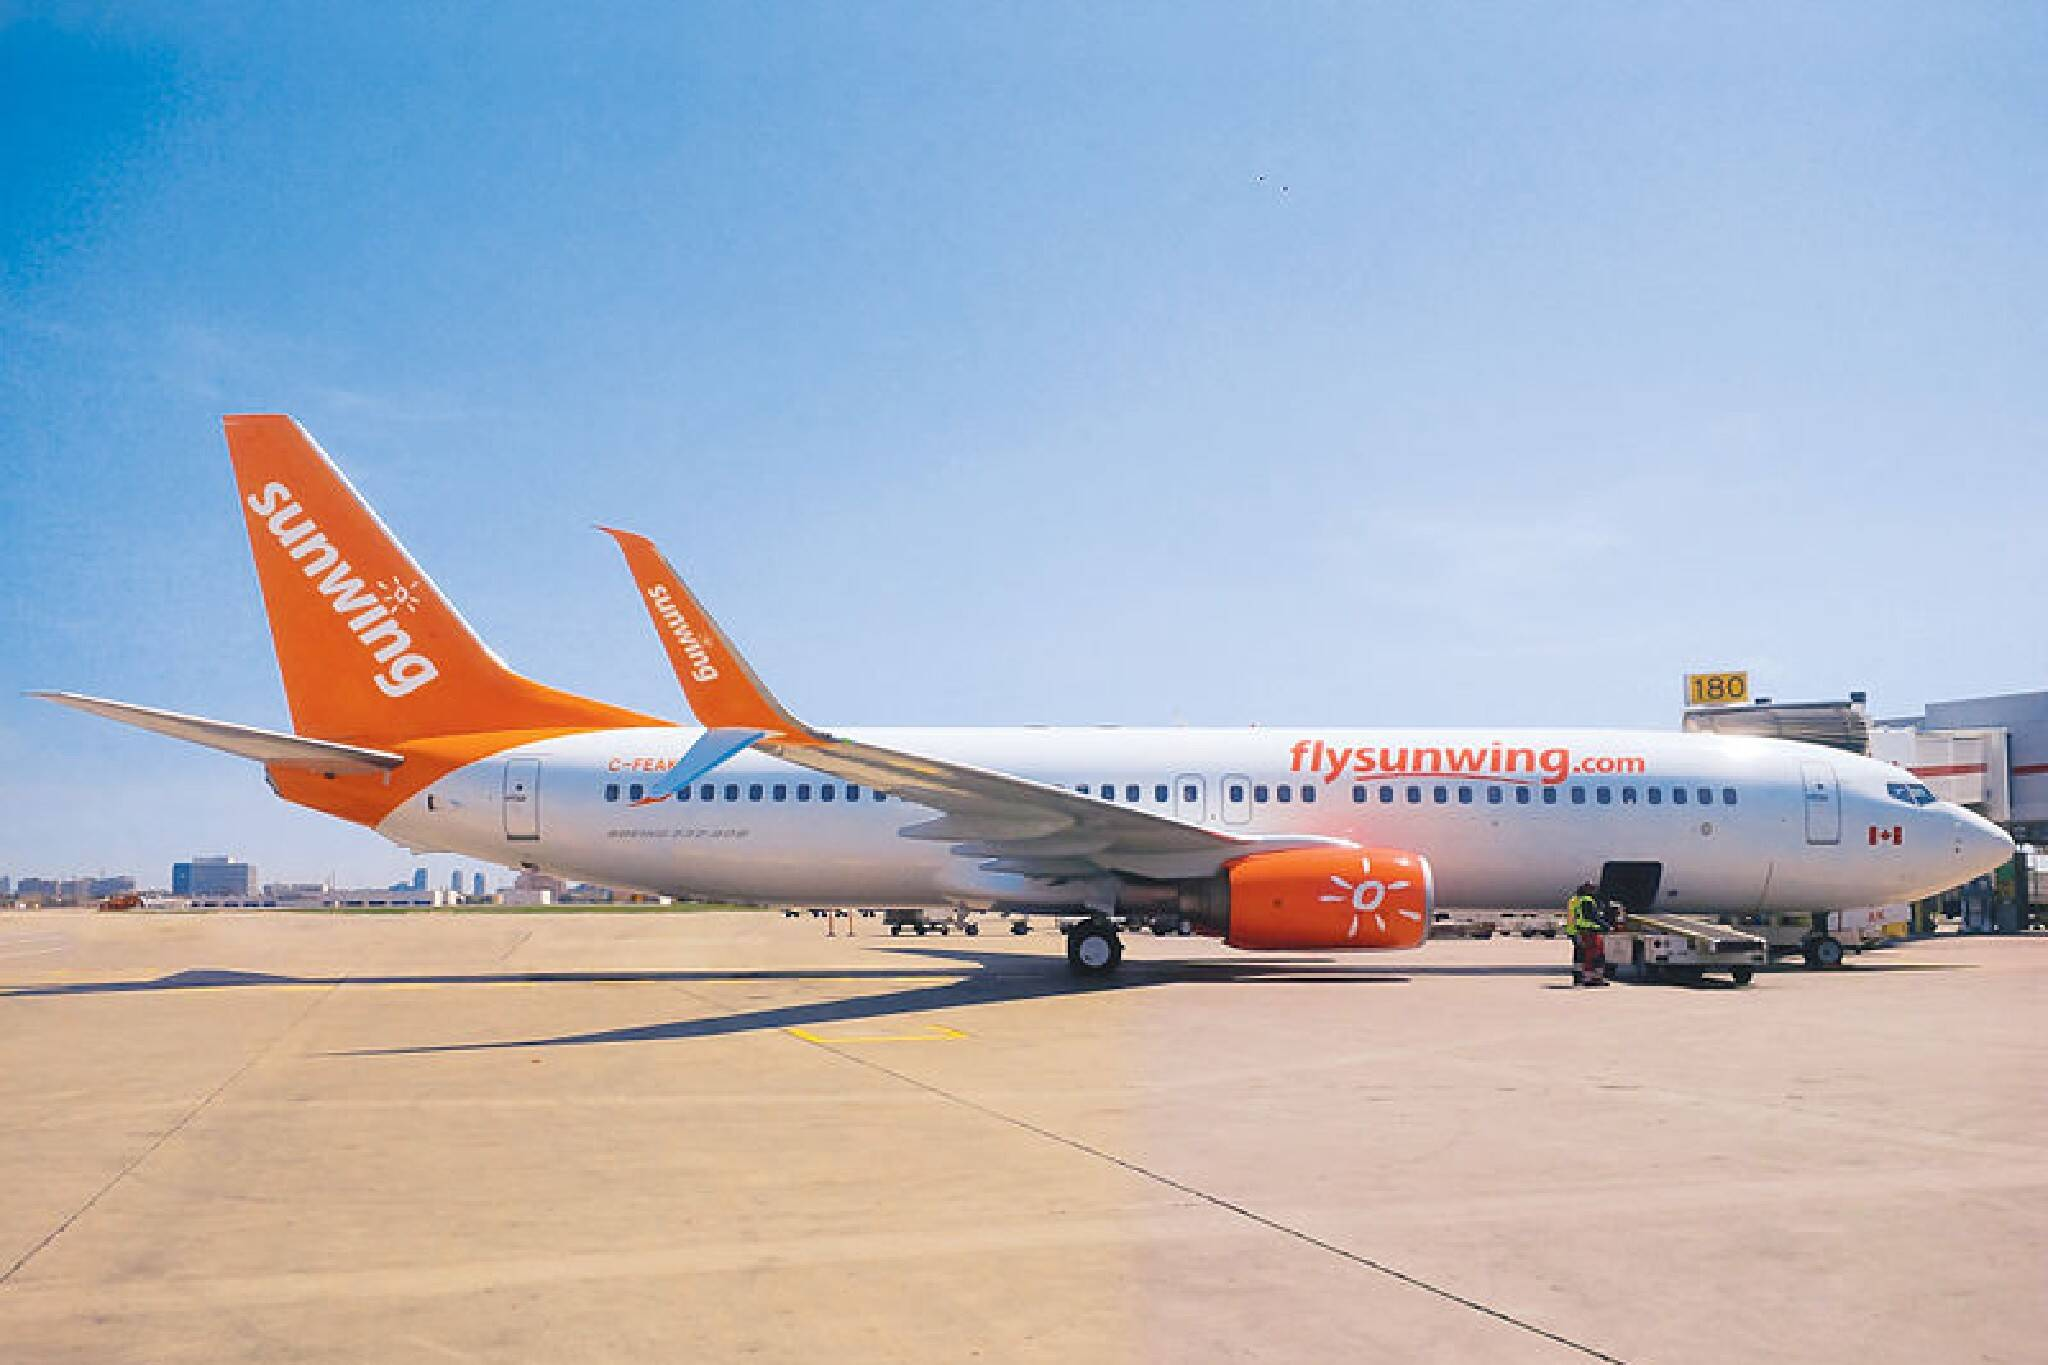 sunwing flights